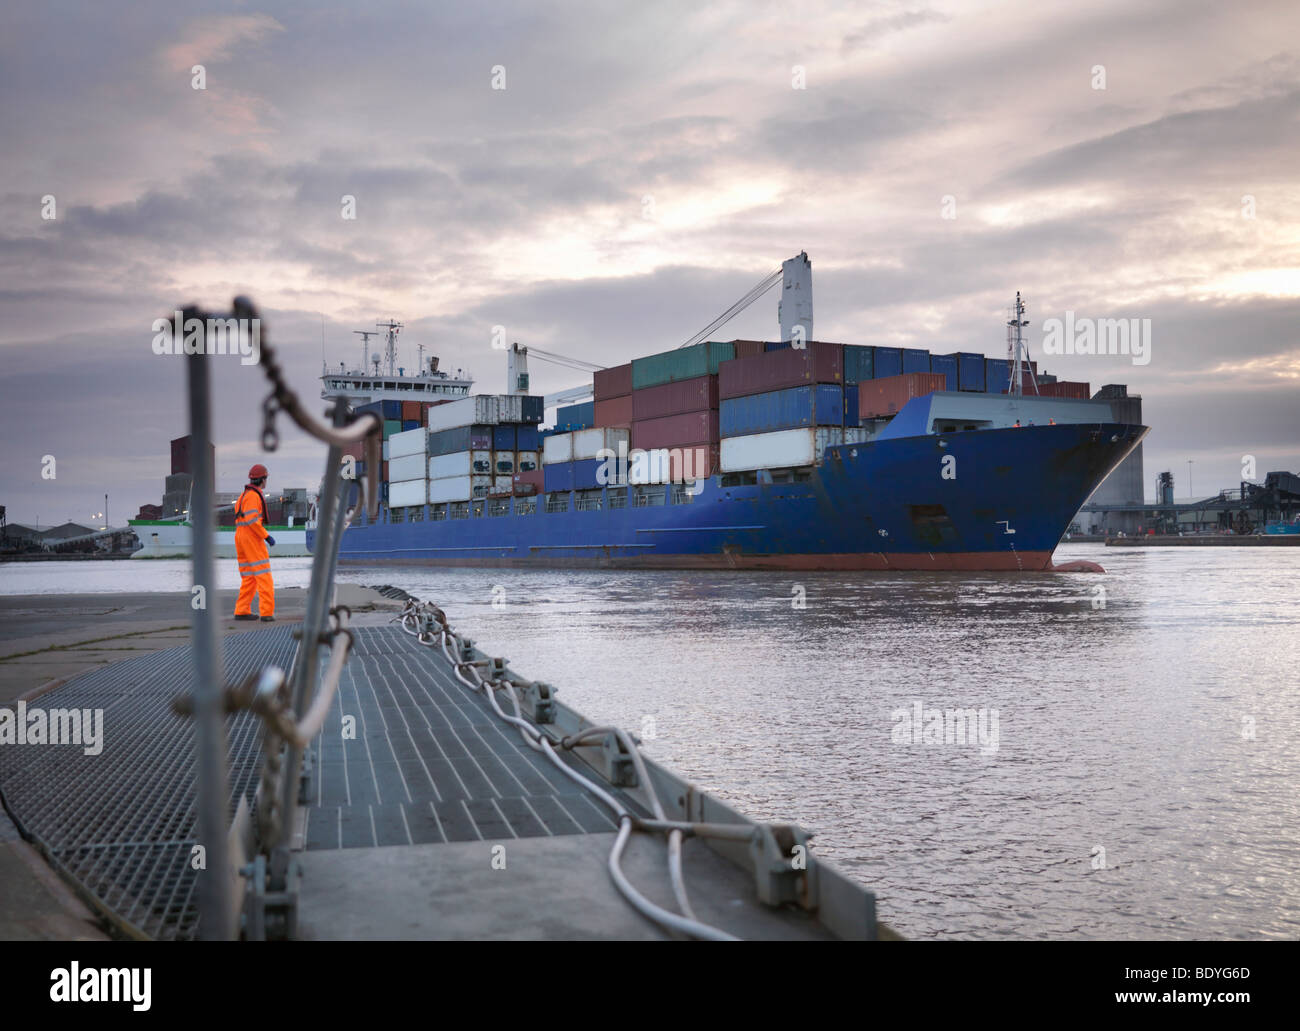 Port Worker And Ship Coming Into Port - Stock Image